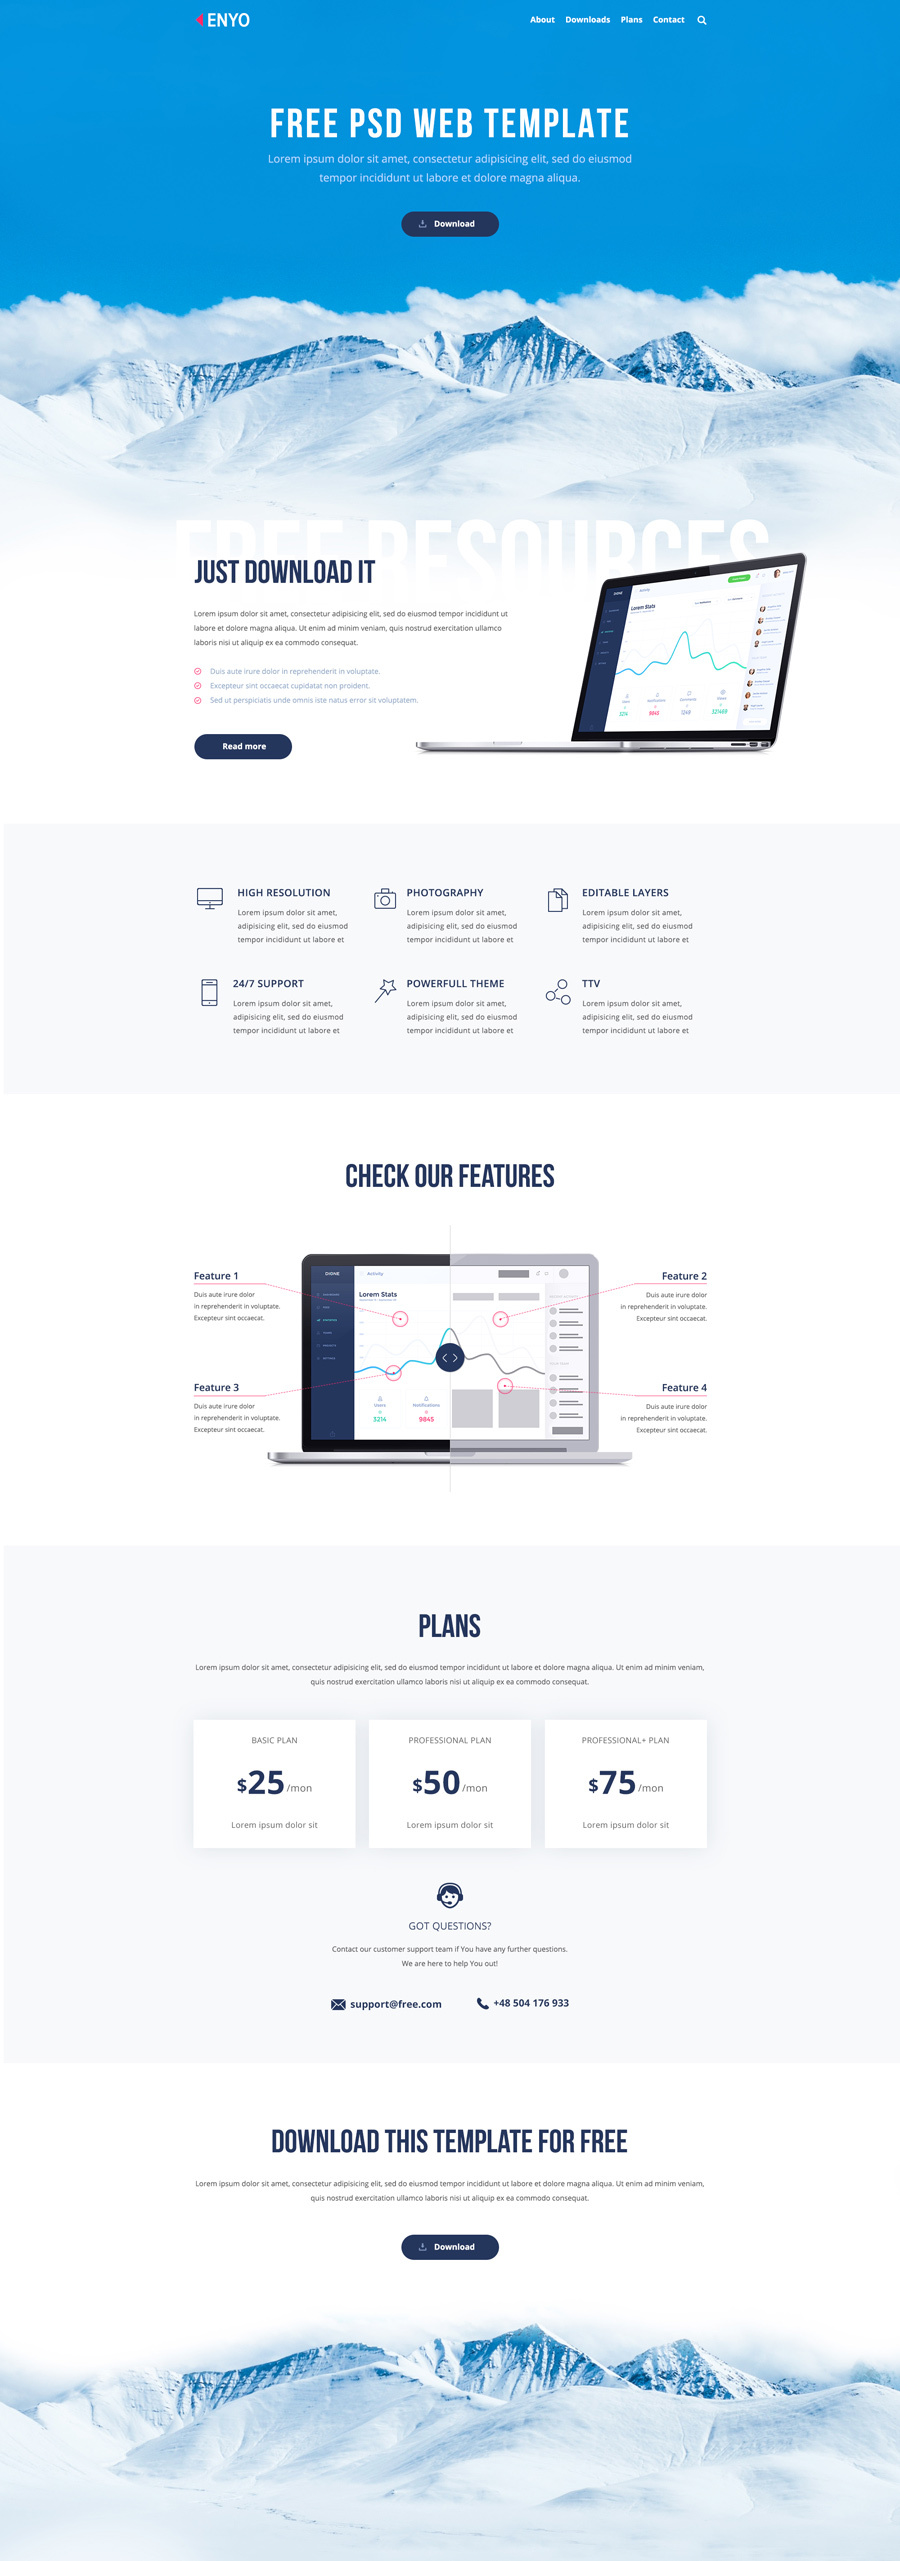 Enyo-Free-PSD-Template